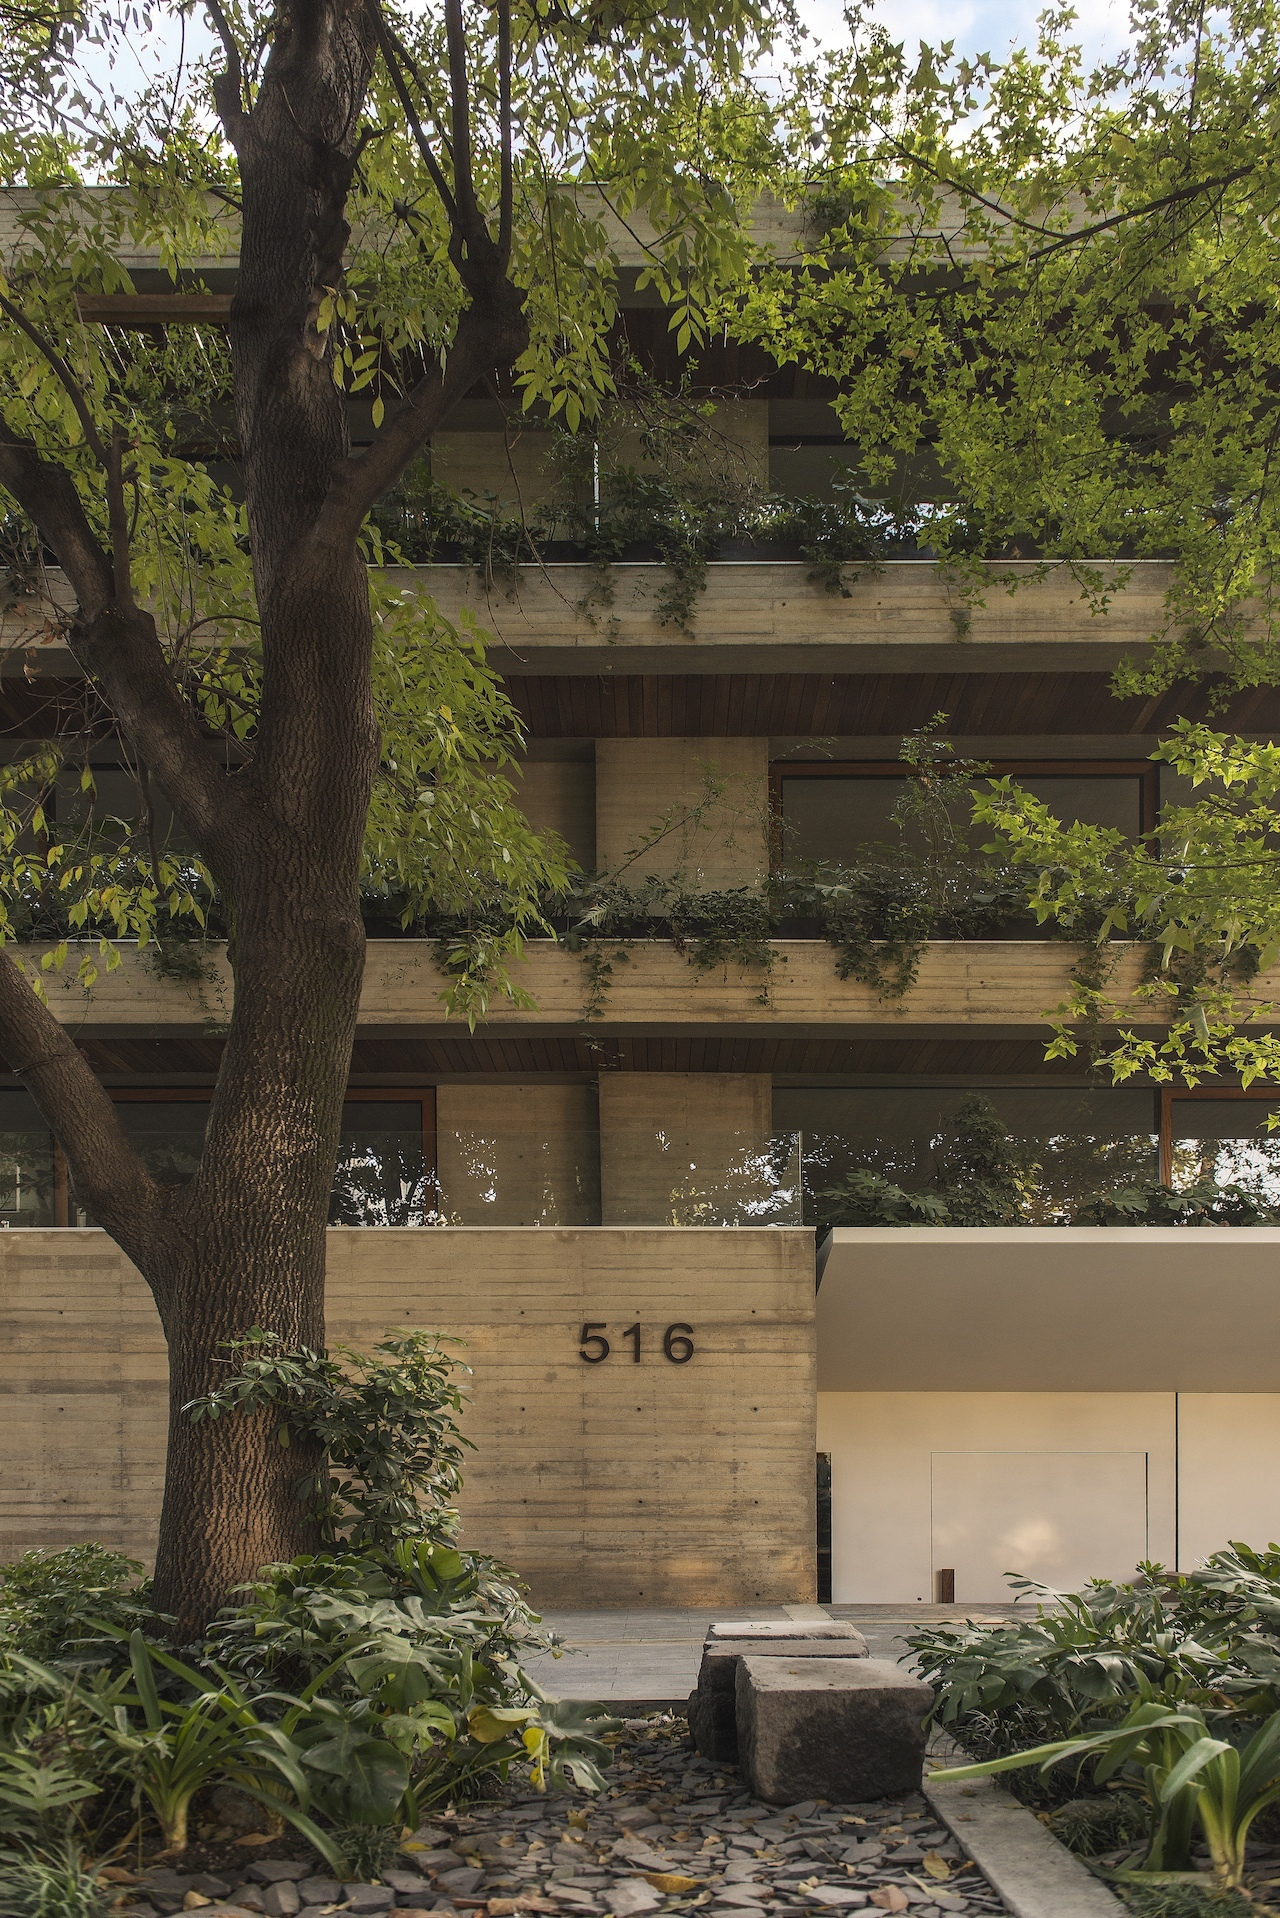 Hegel 516 - FRB Arquitectura